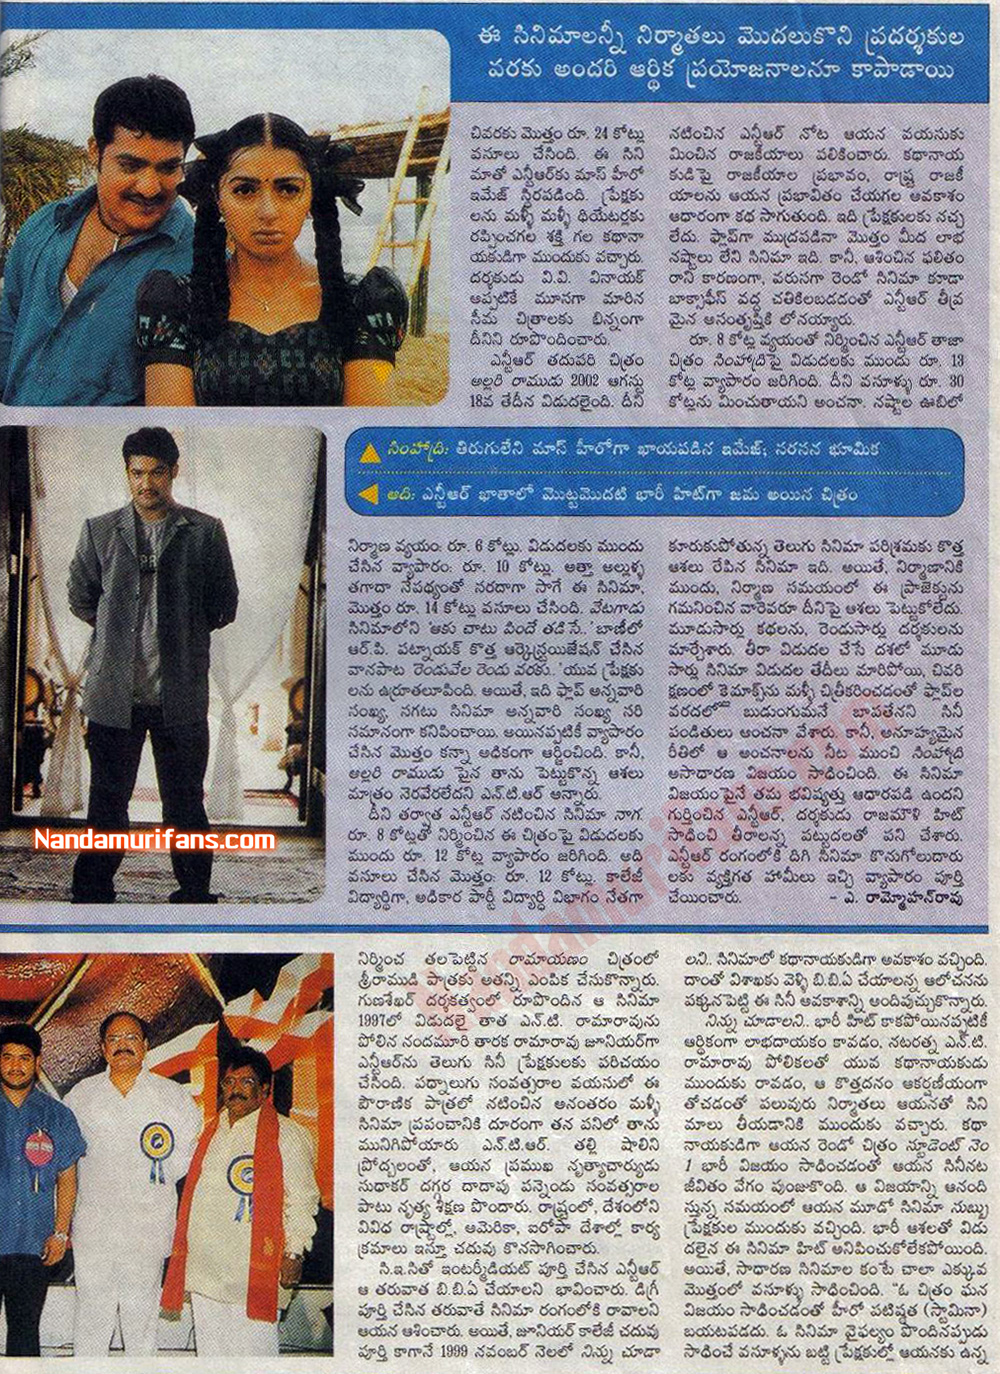 Indiatoday mainicle on NTR Jr. -4